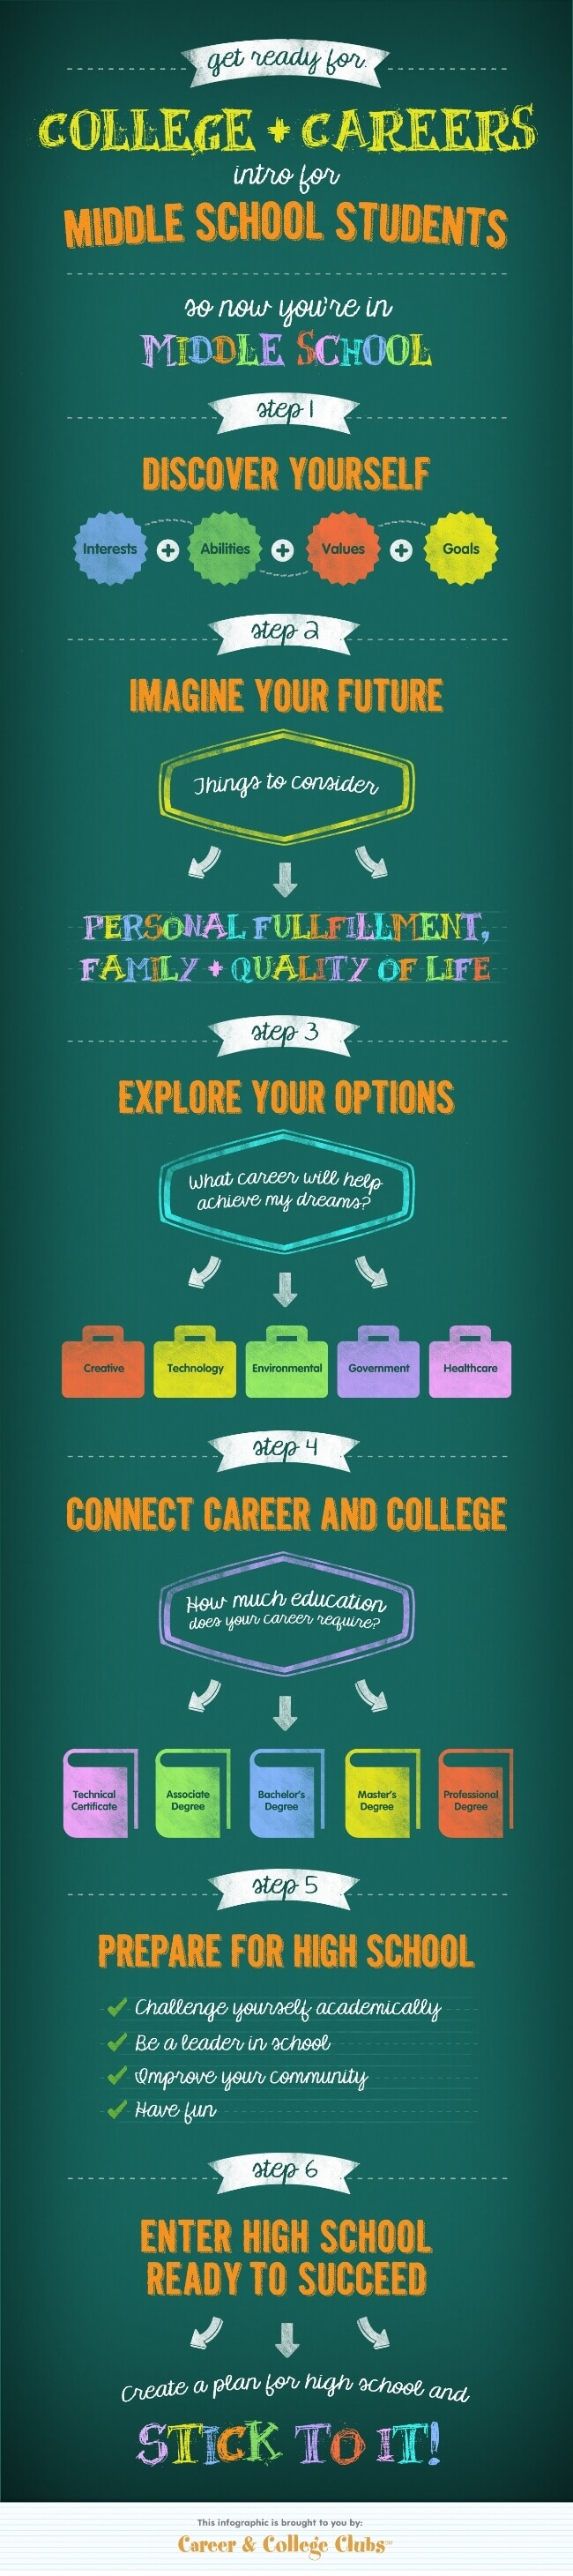 Tips to Prepare for High School as Middle Schooler tips tipsographic